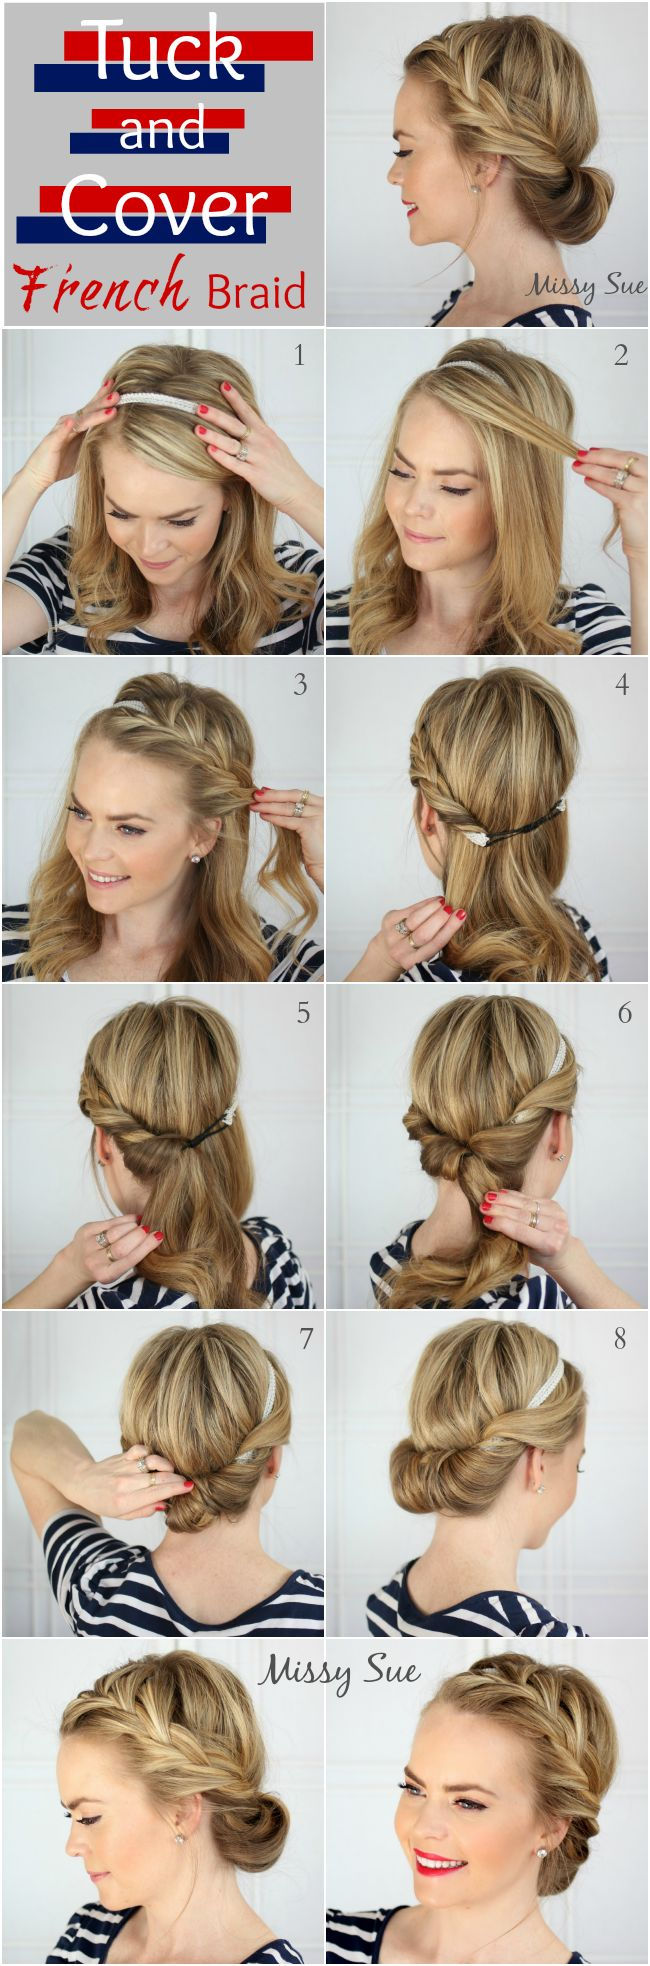 Tuck and Cover French Braid - cute Summer hair